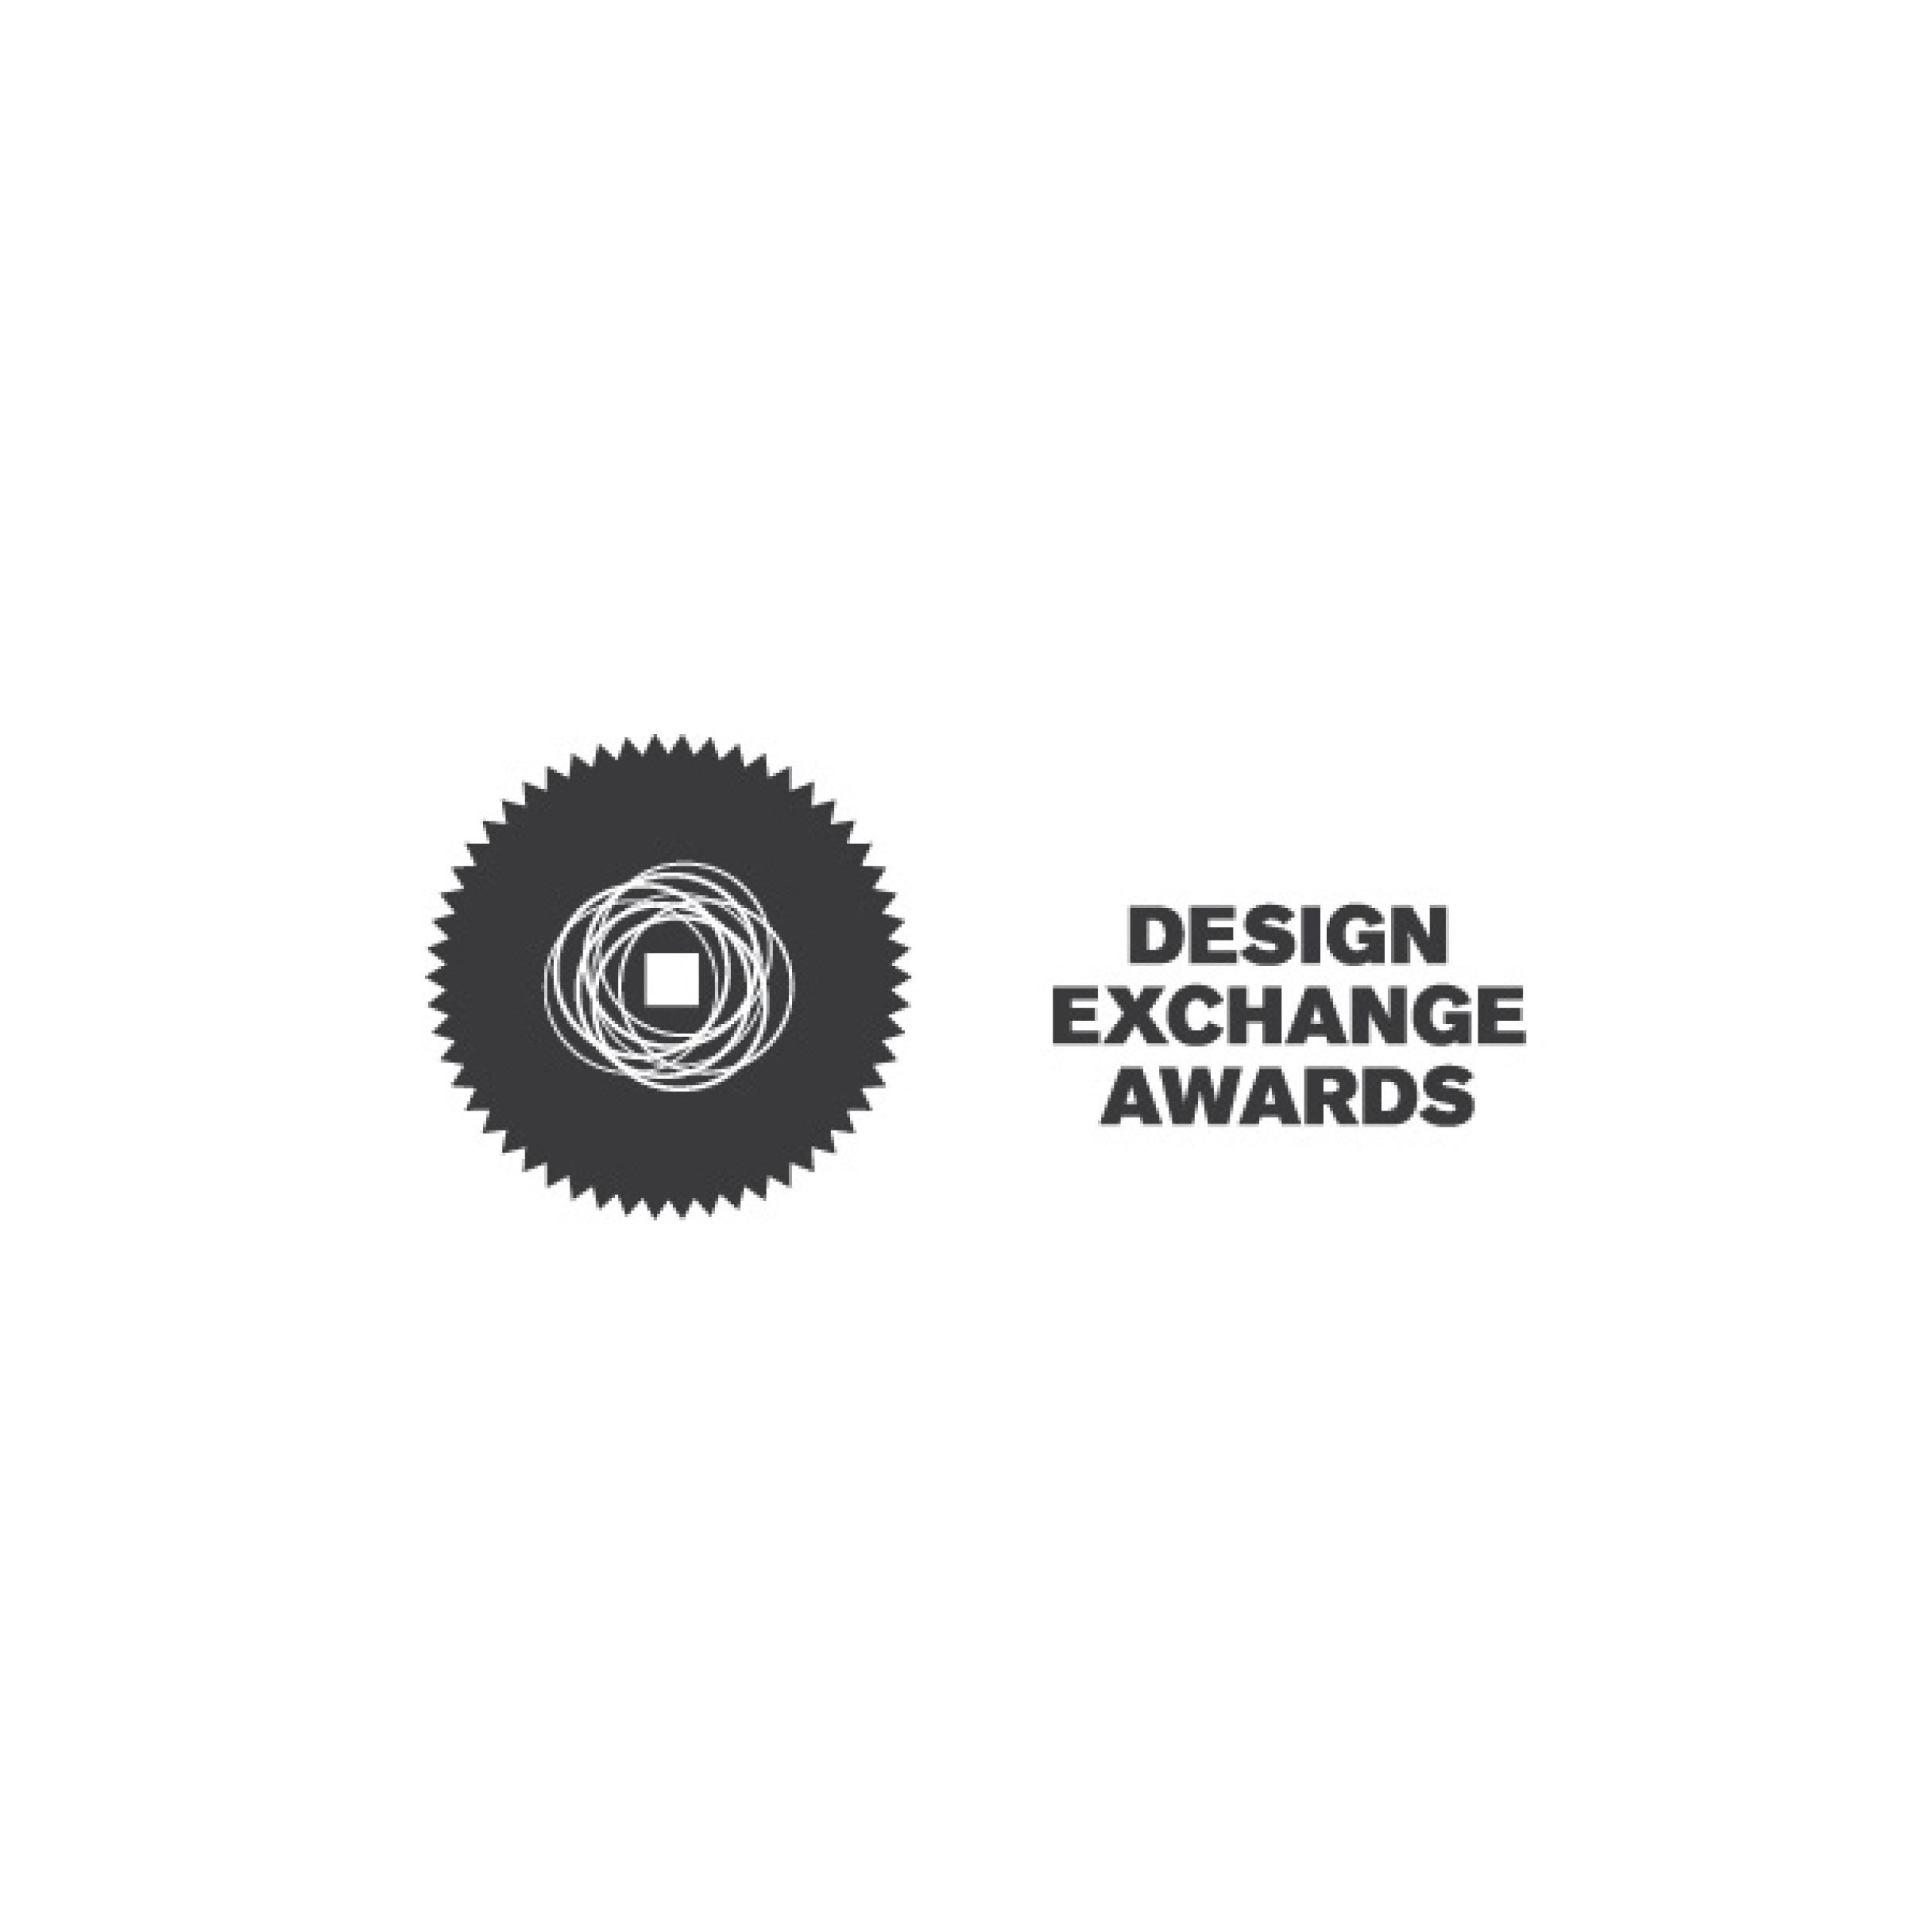 logo for the Design Exchange Awards